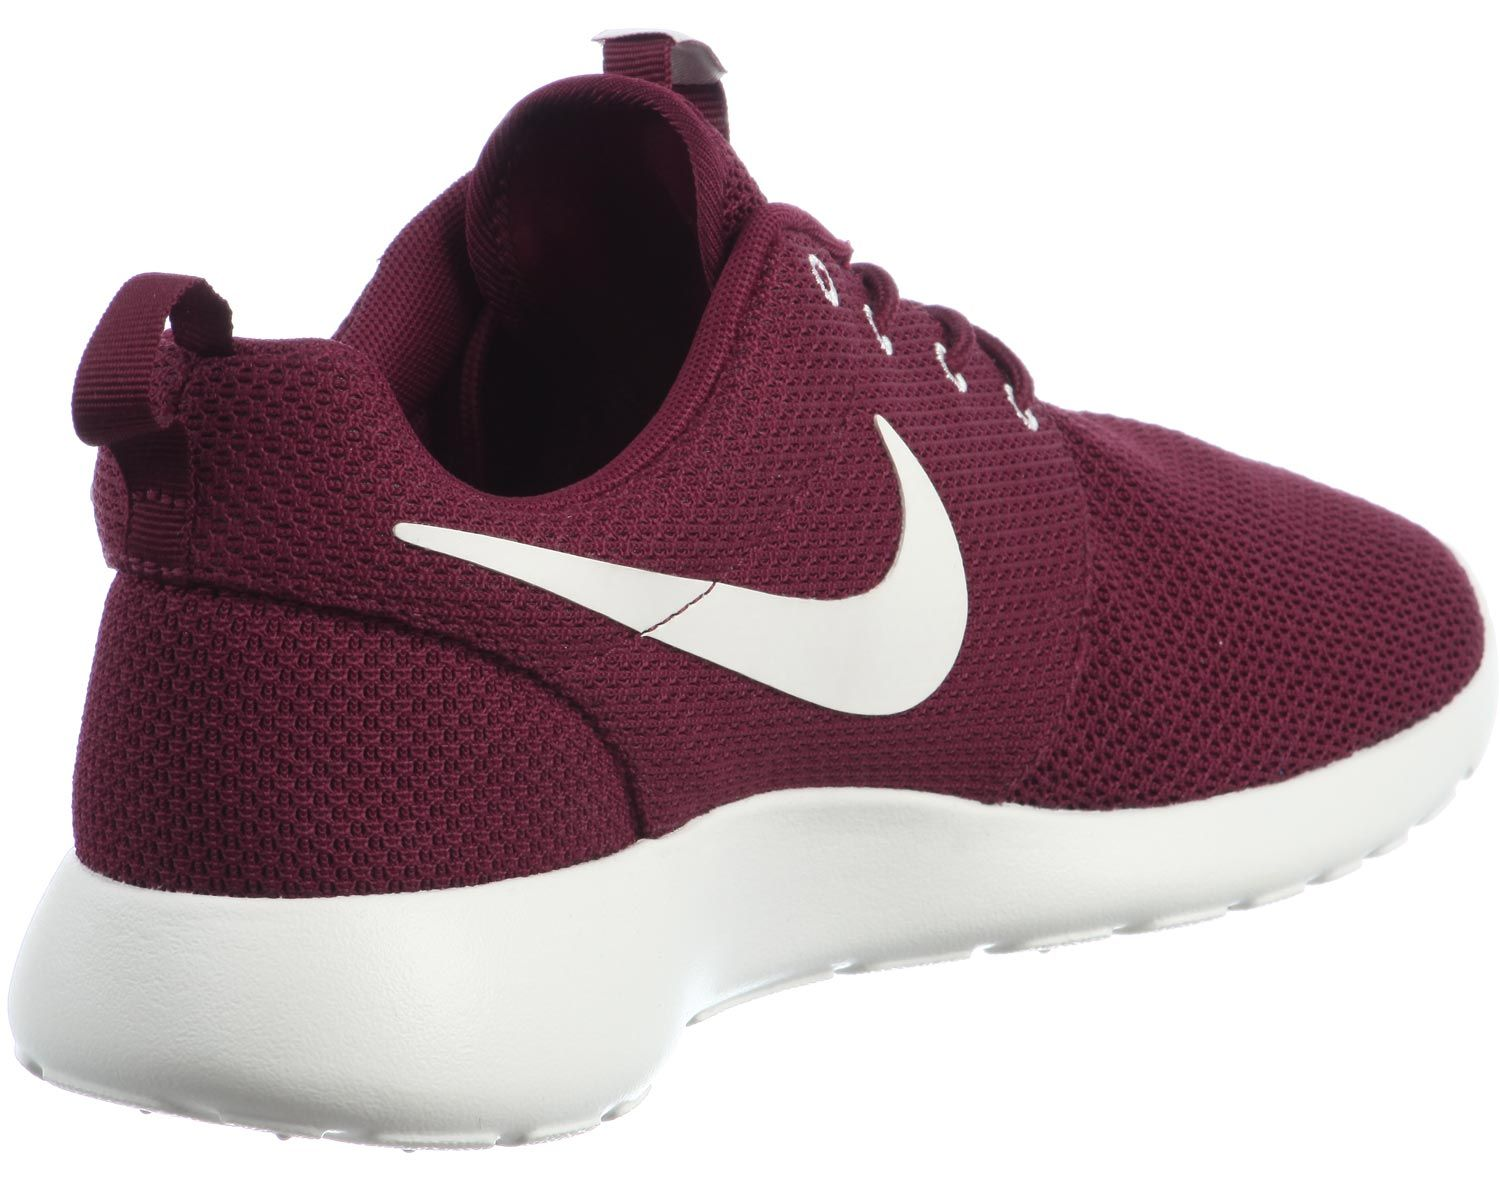 nike roshe run homme bordeaux